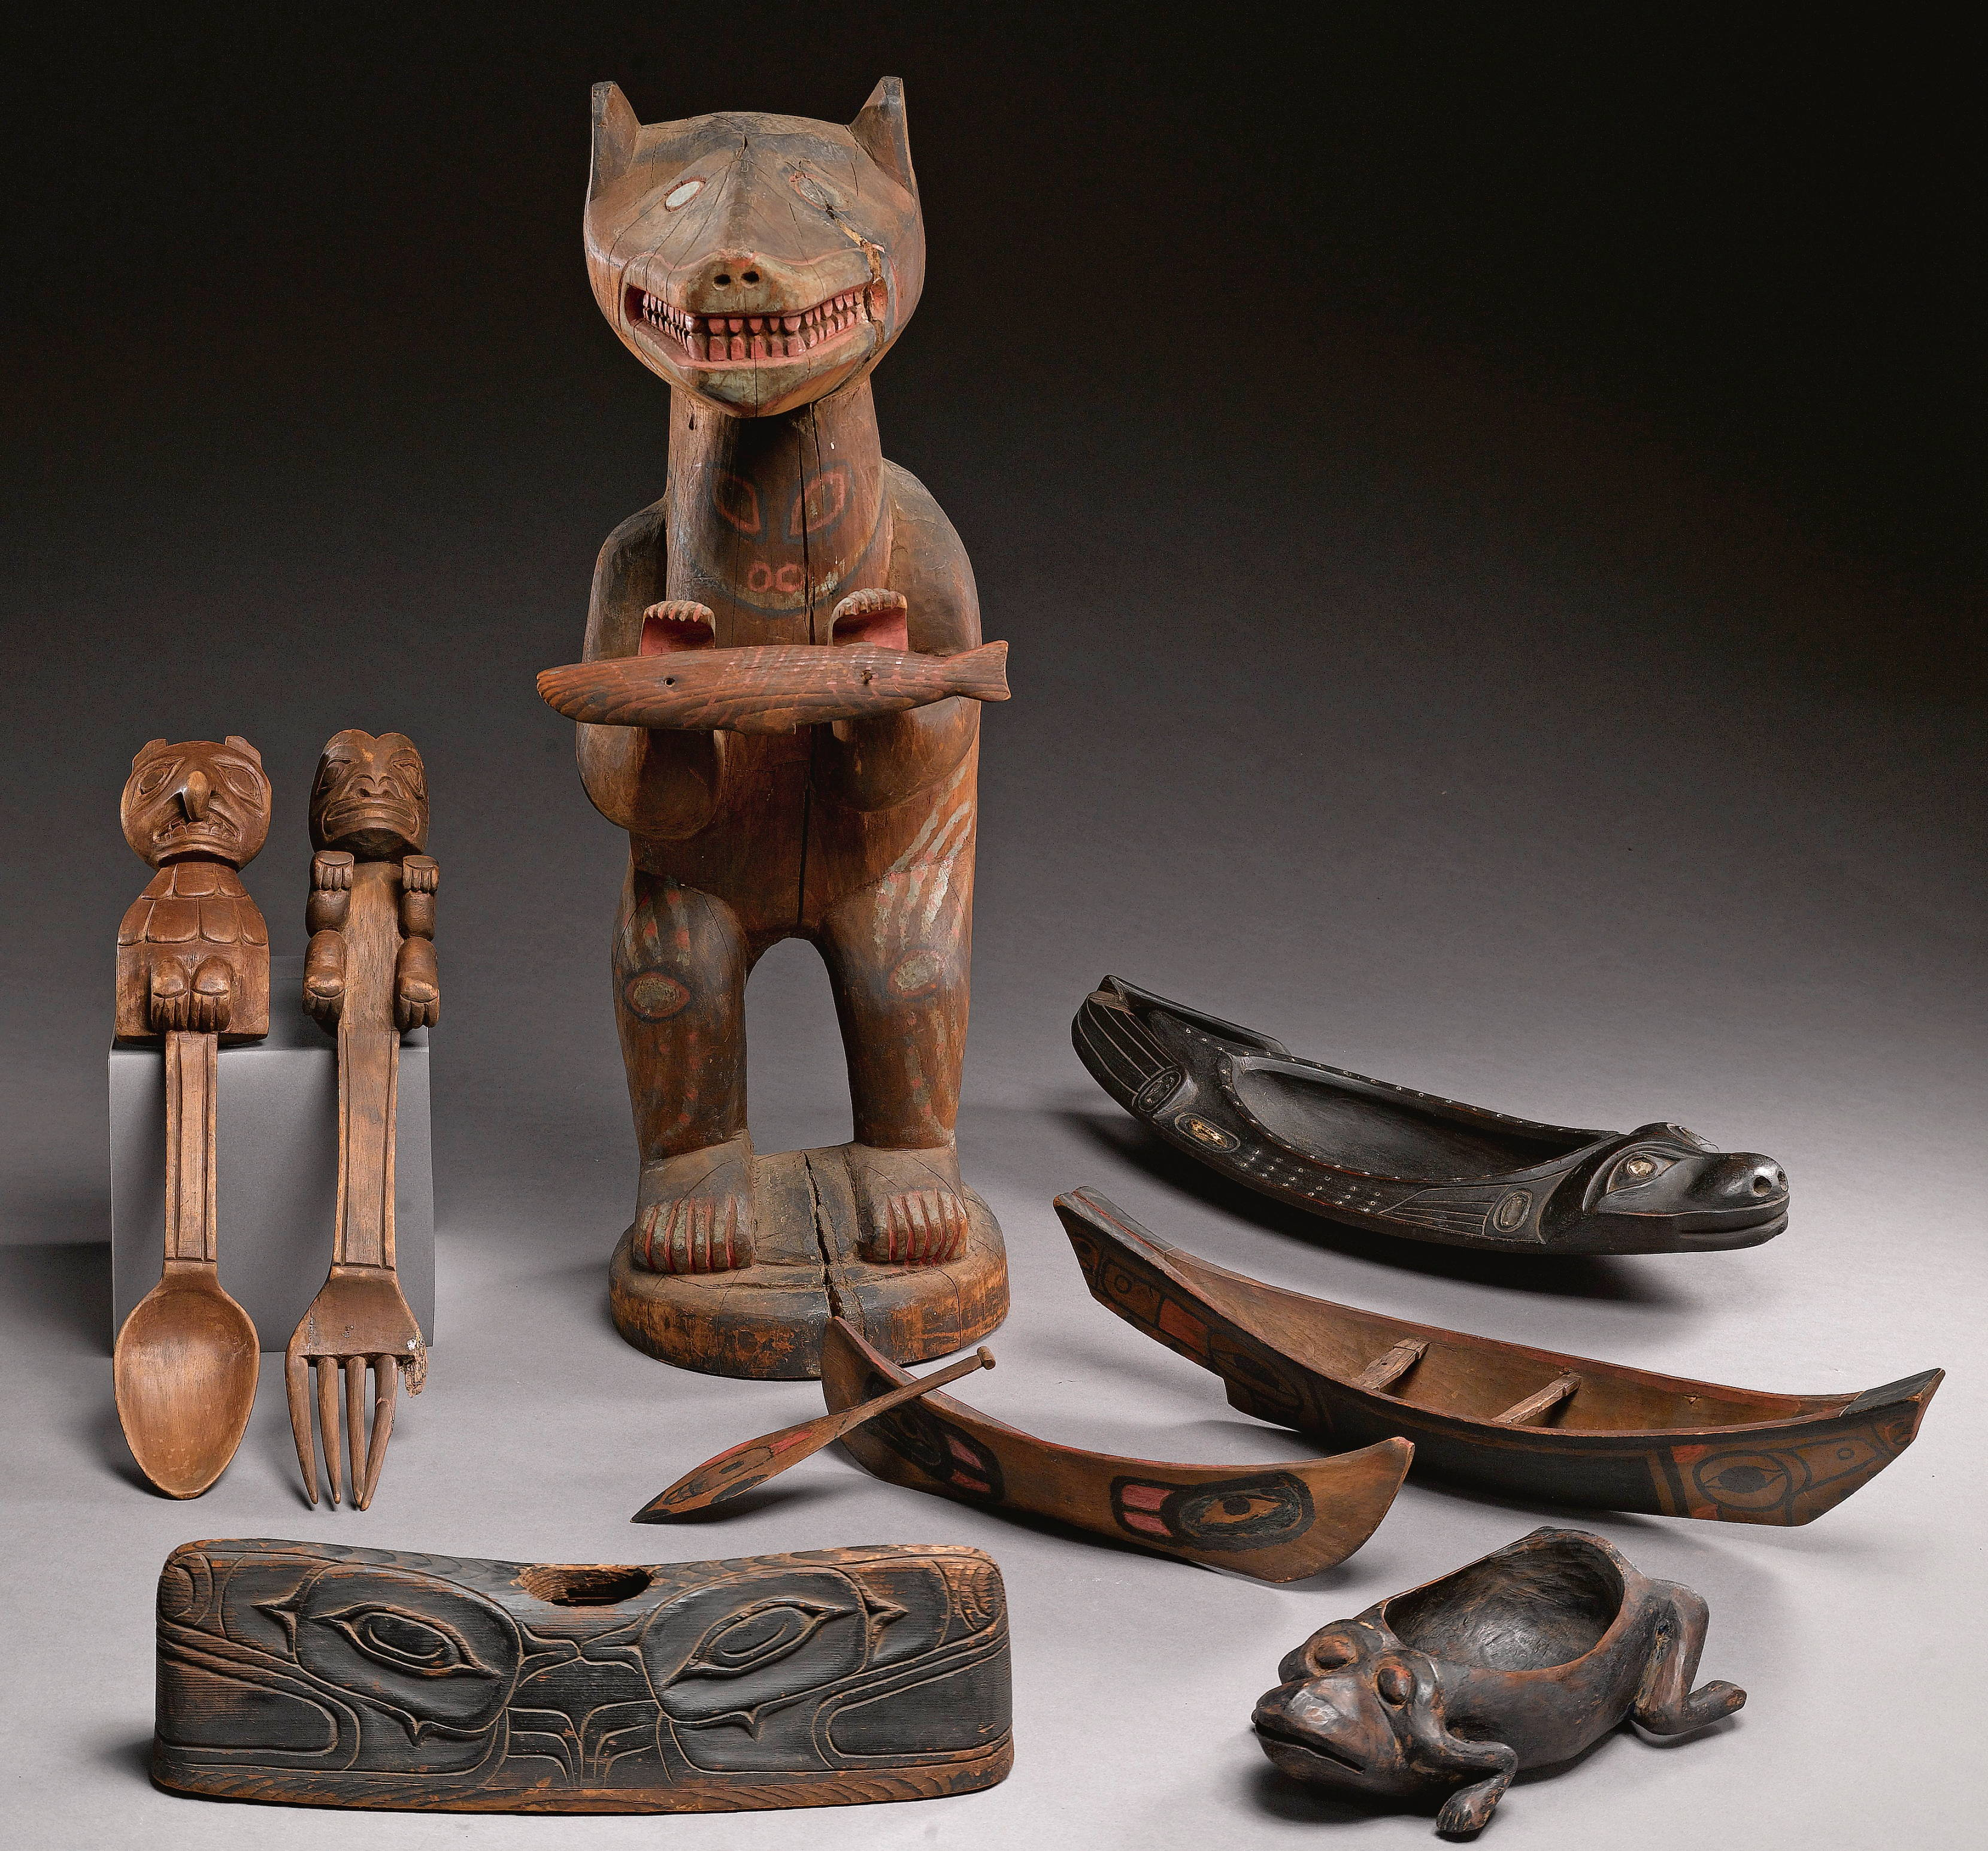 Artefacts of the First Nations of the Pacific Northwest